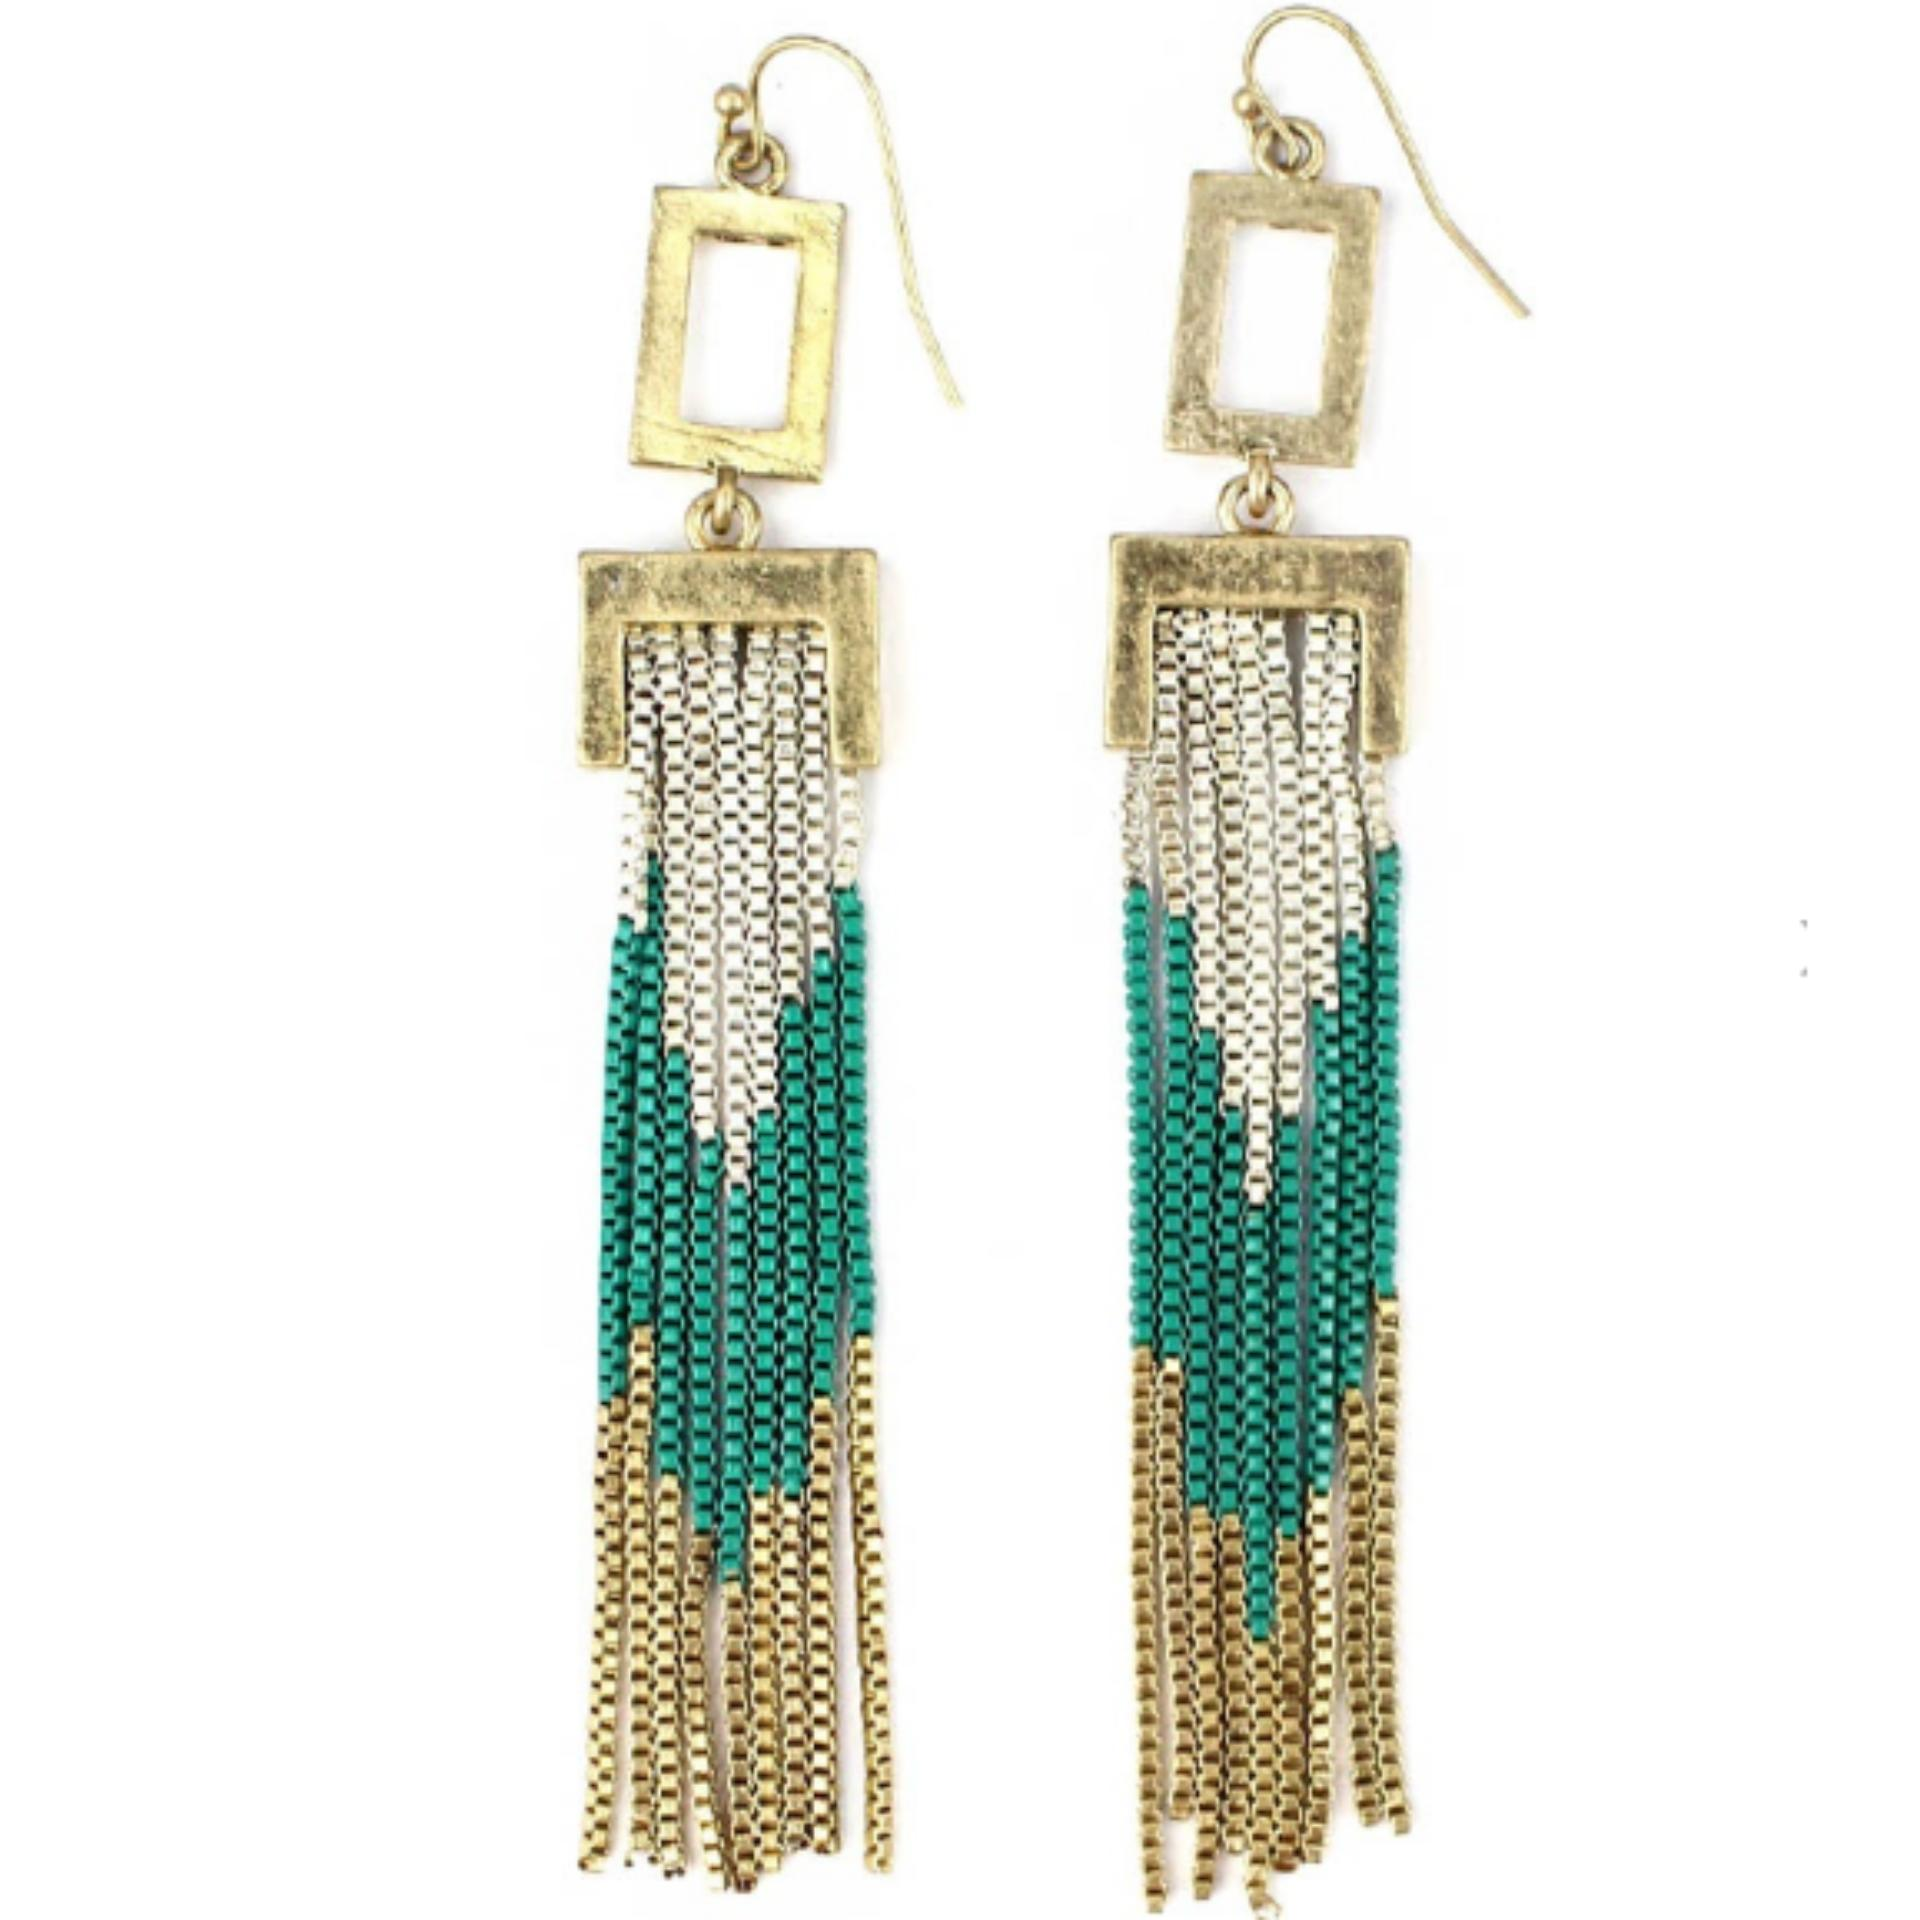 Philippines | Rectangular Earrings Vintage Earrings Dangle ...